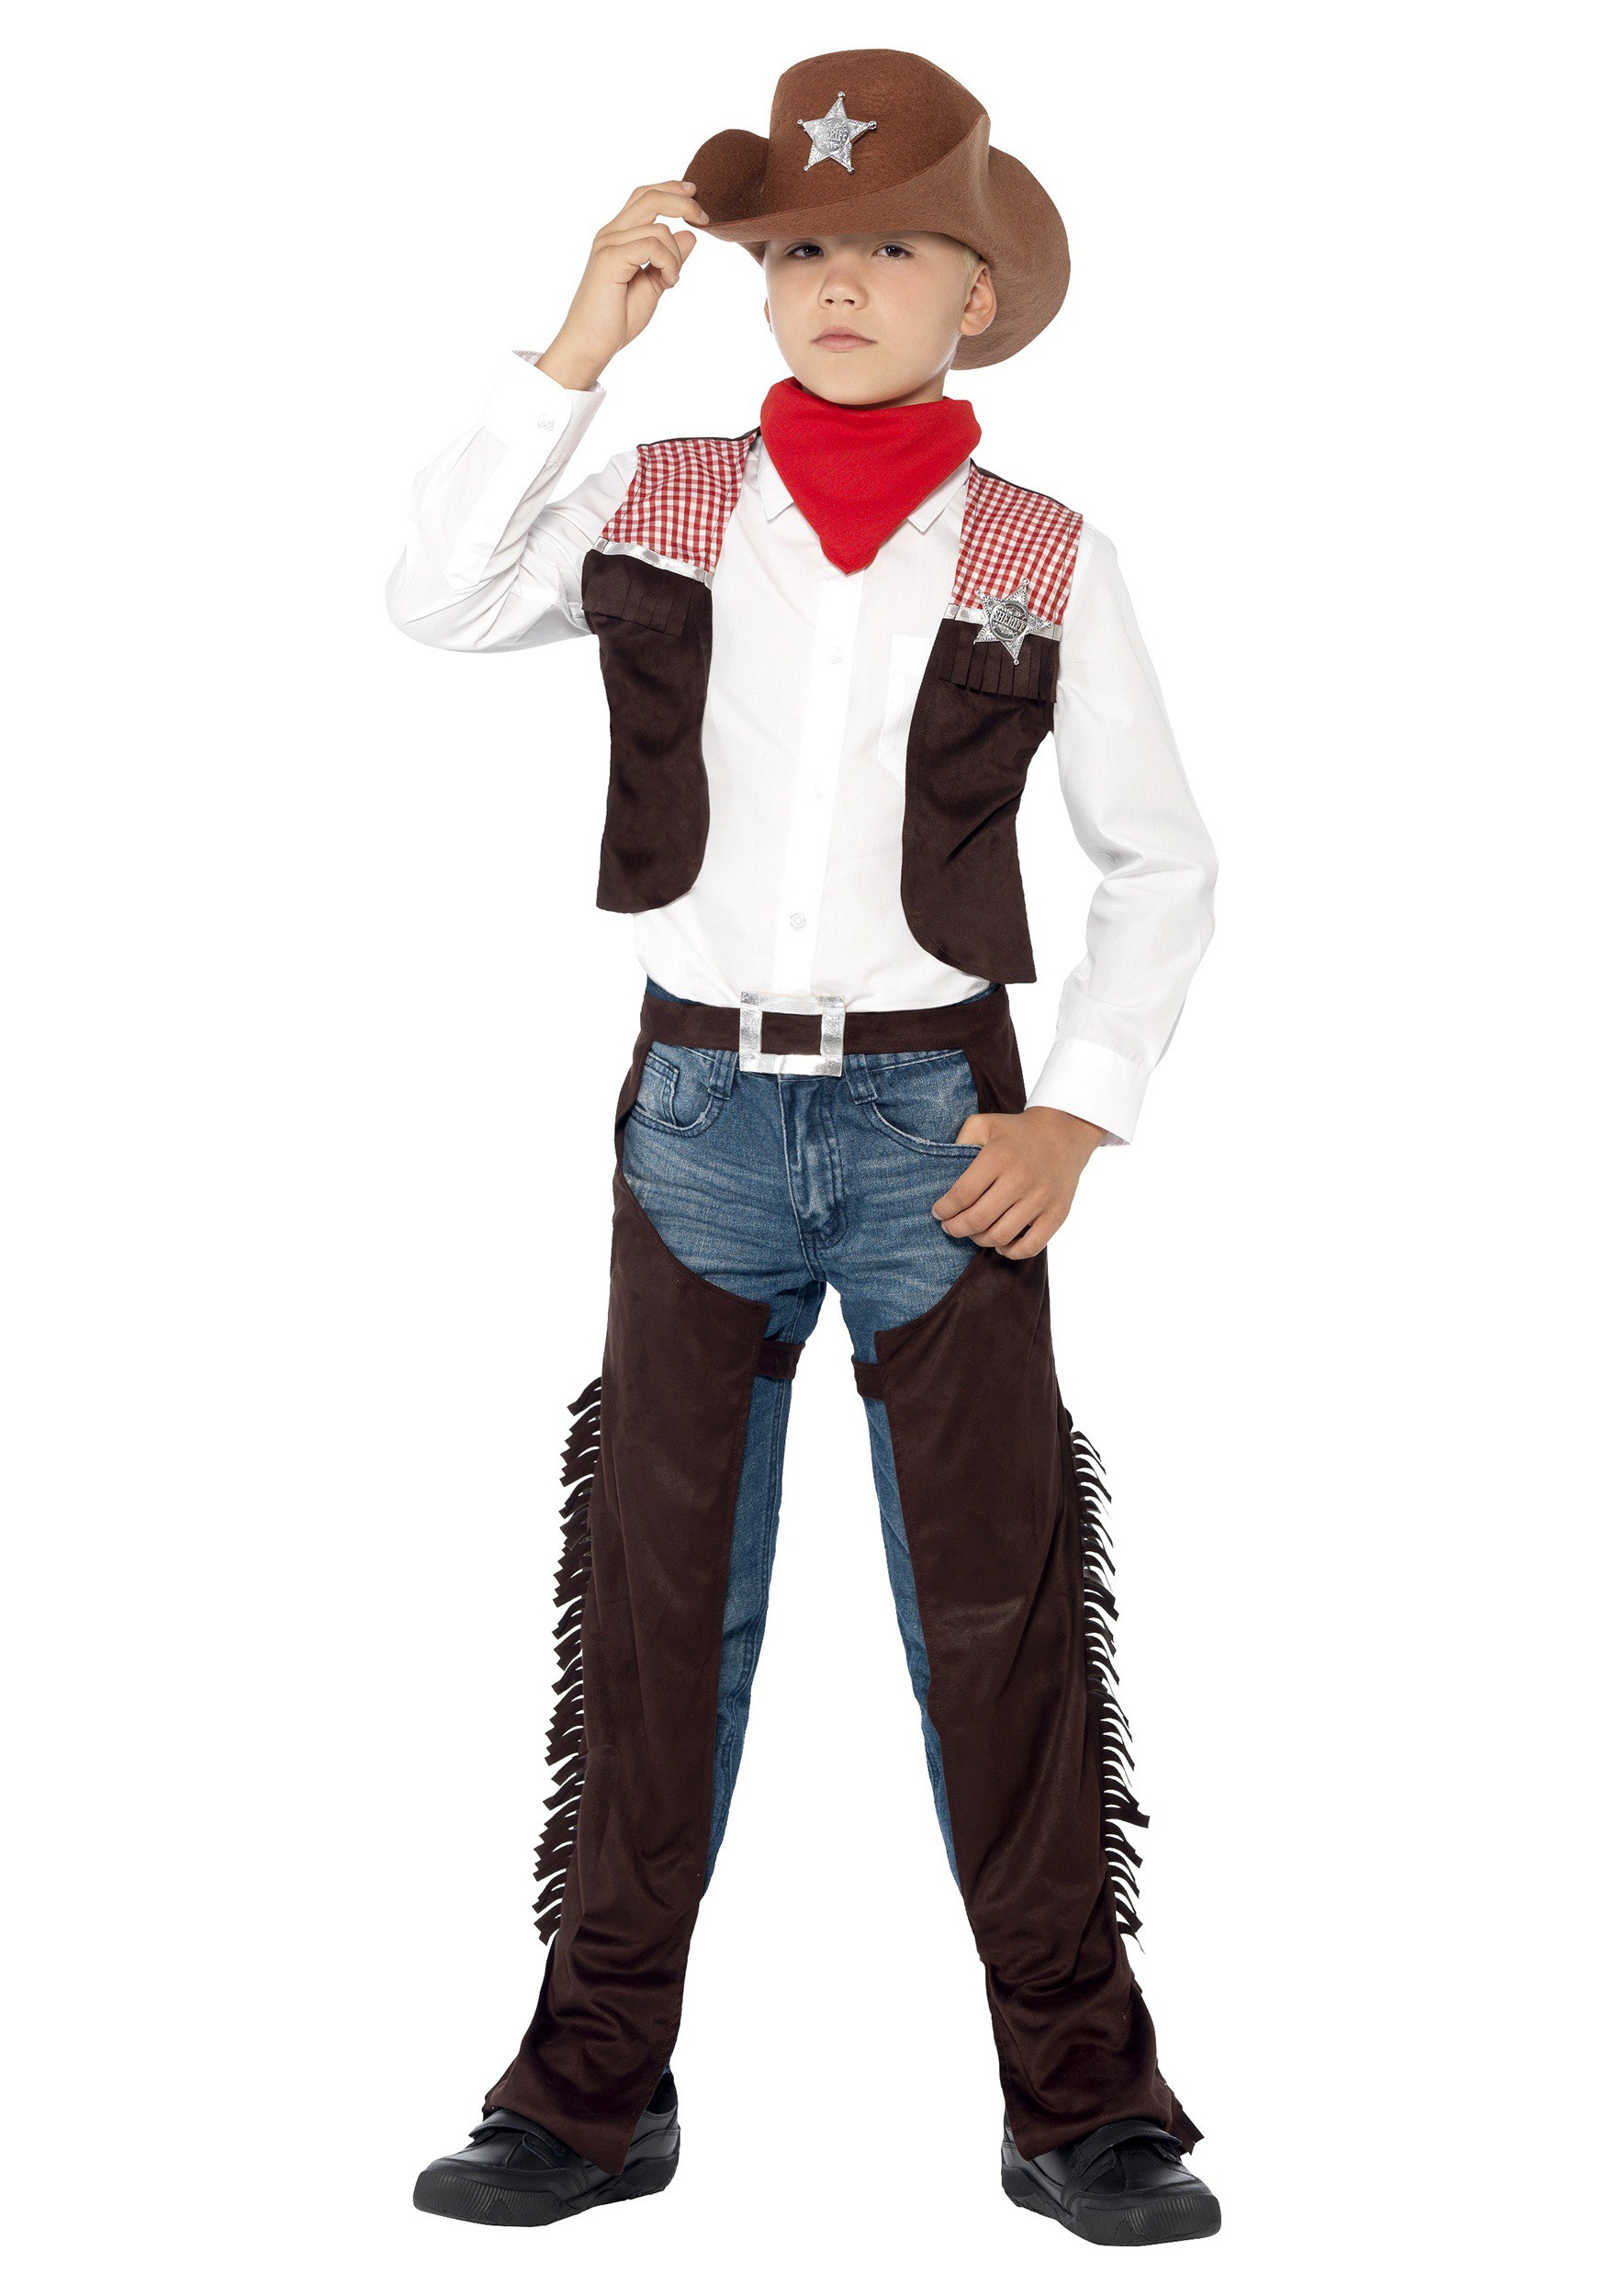 Child's Deluxe Cowboy Costume